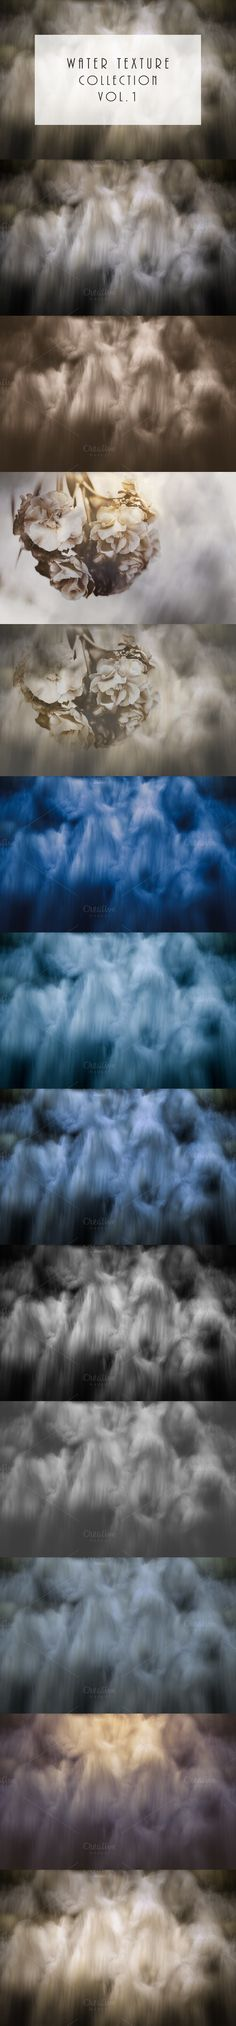 Water texture collection vol.1. Textures. $15.00